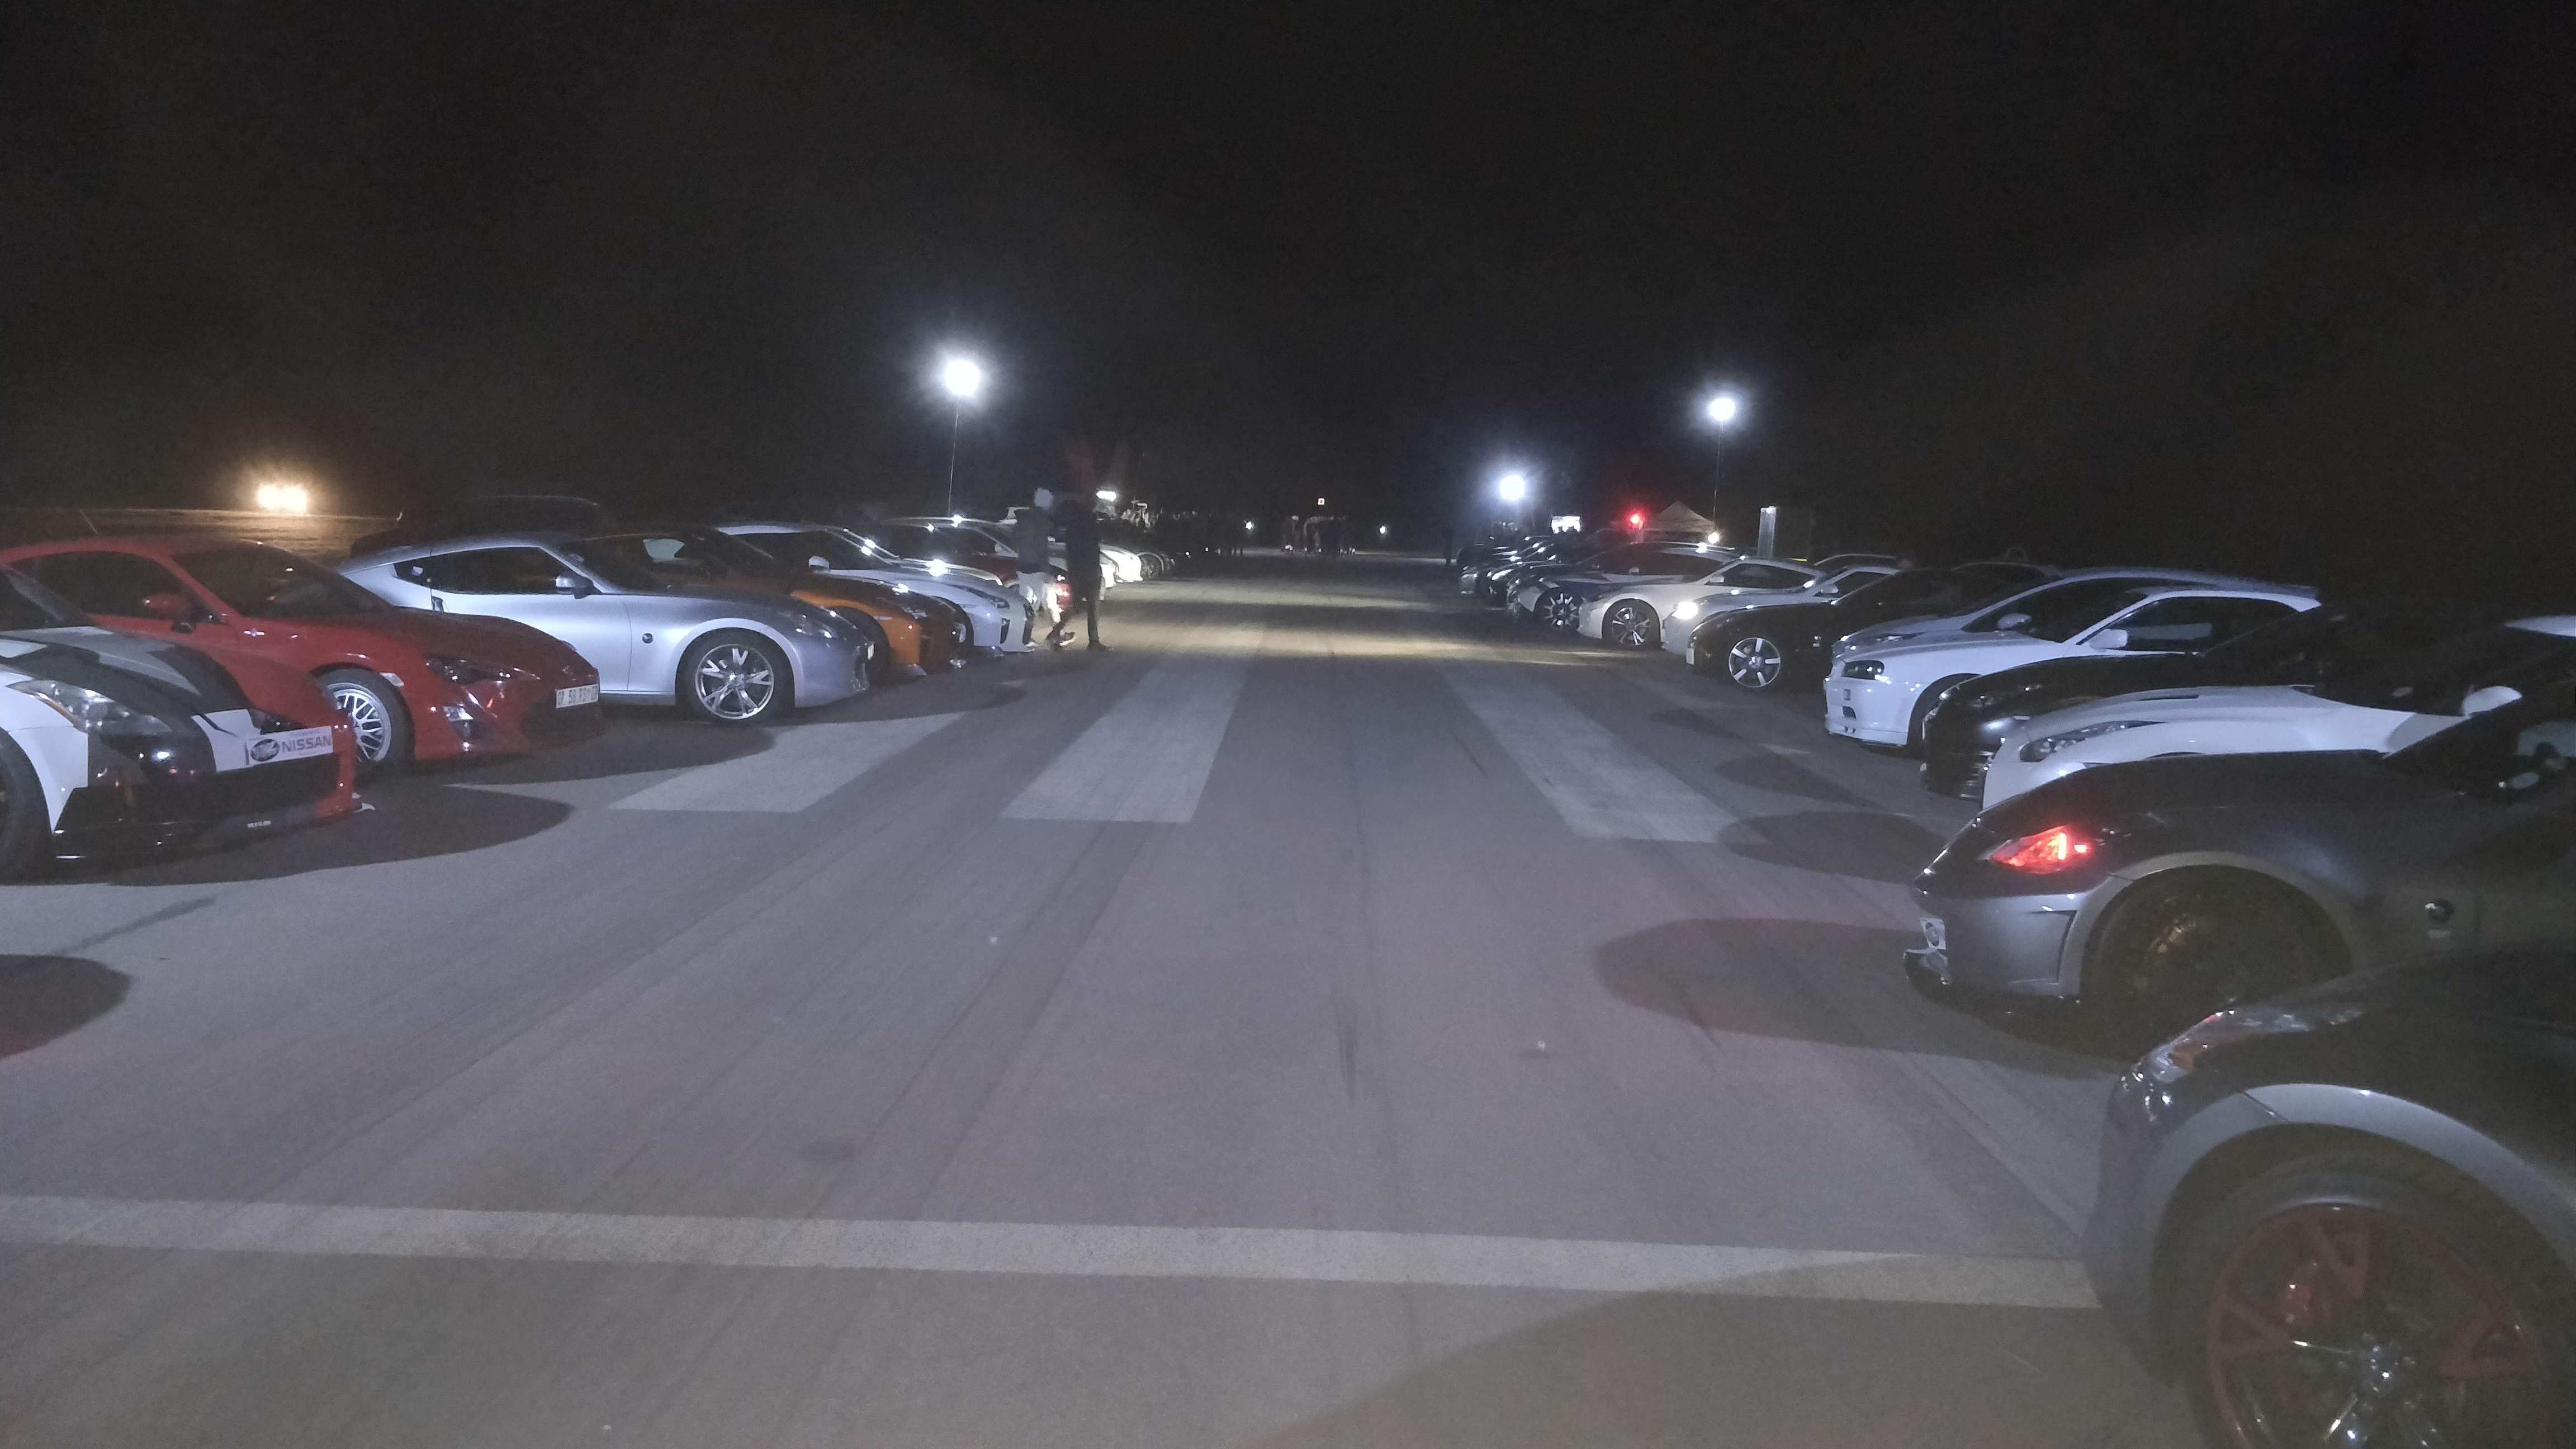 A few GTR and Z cars